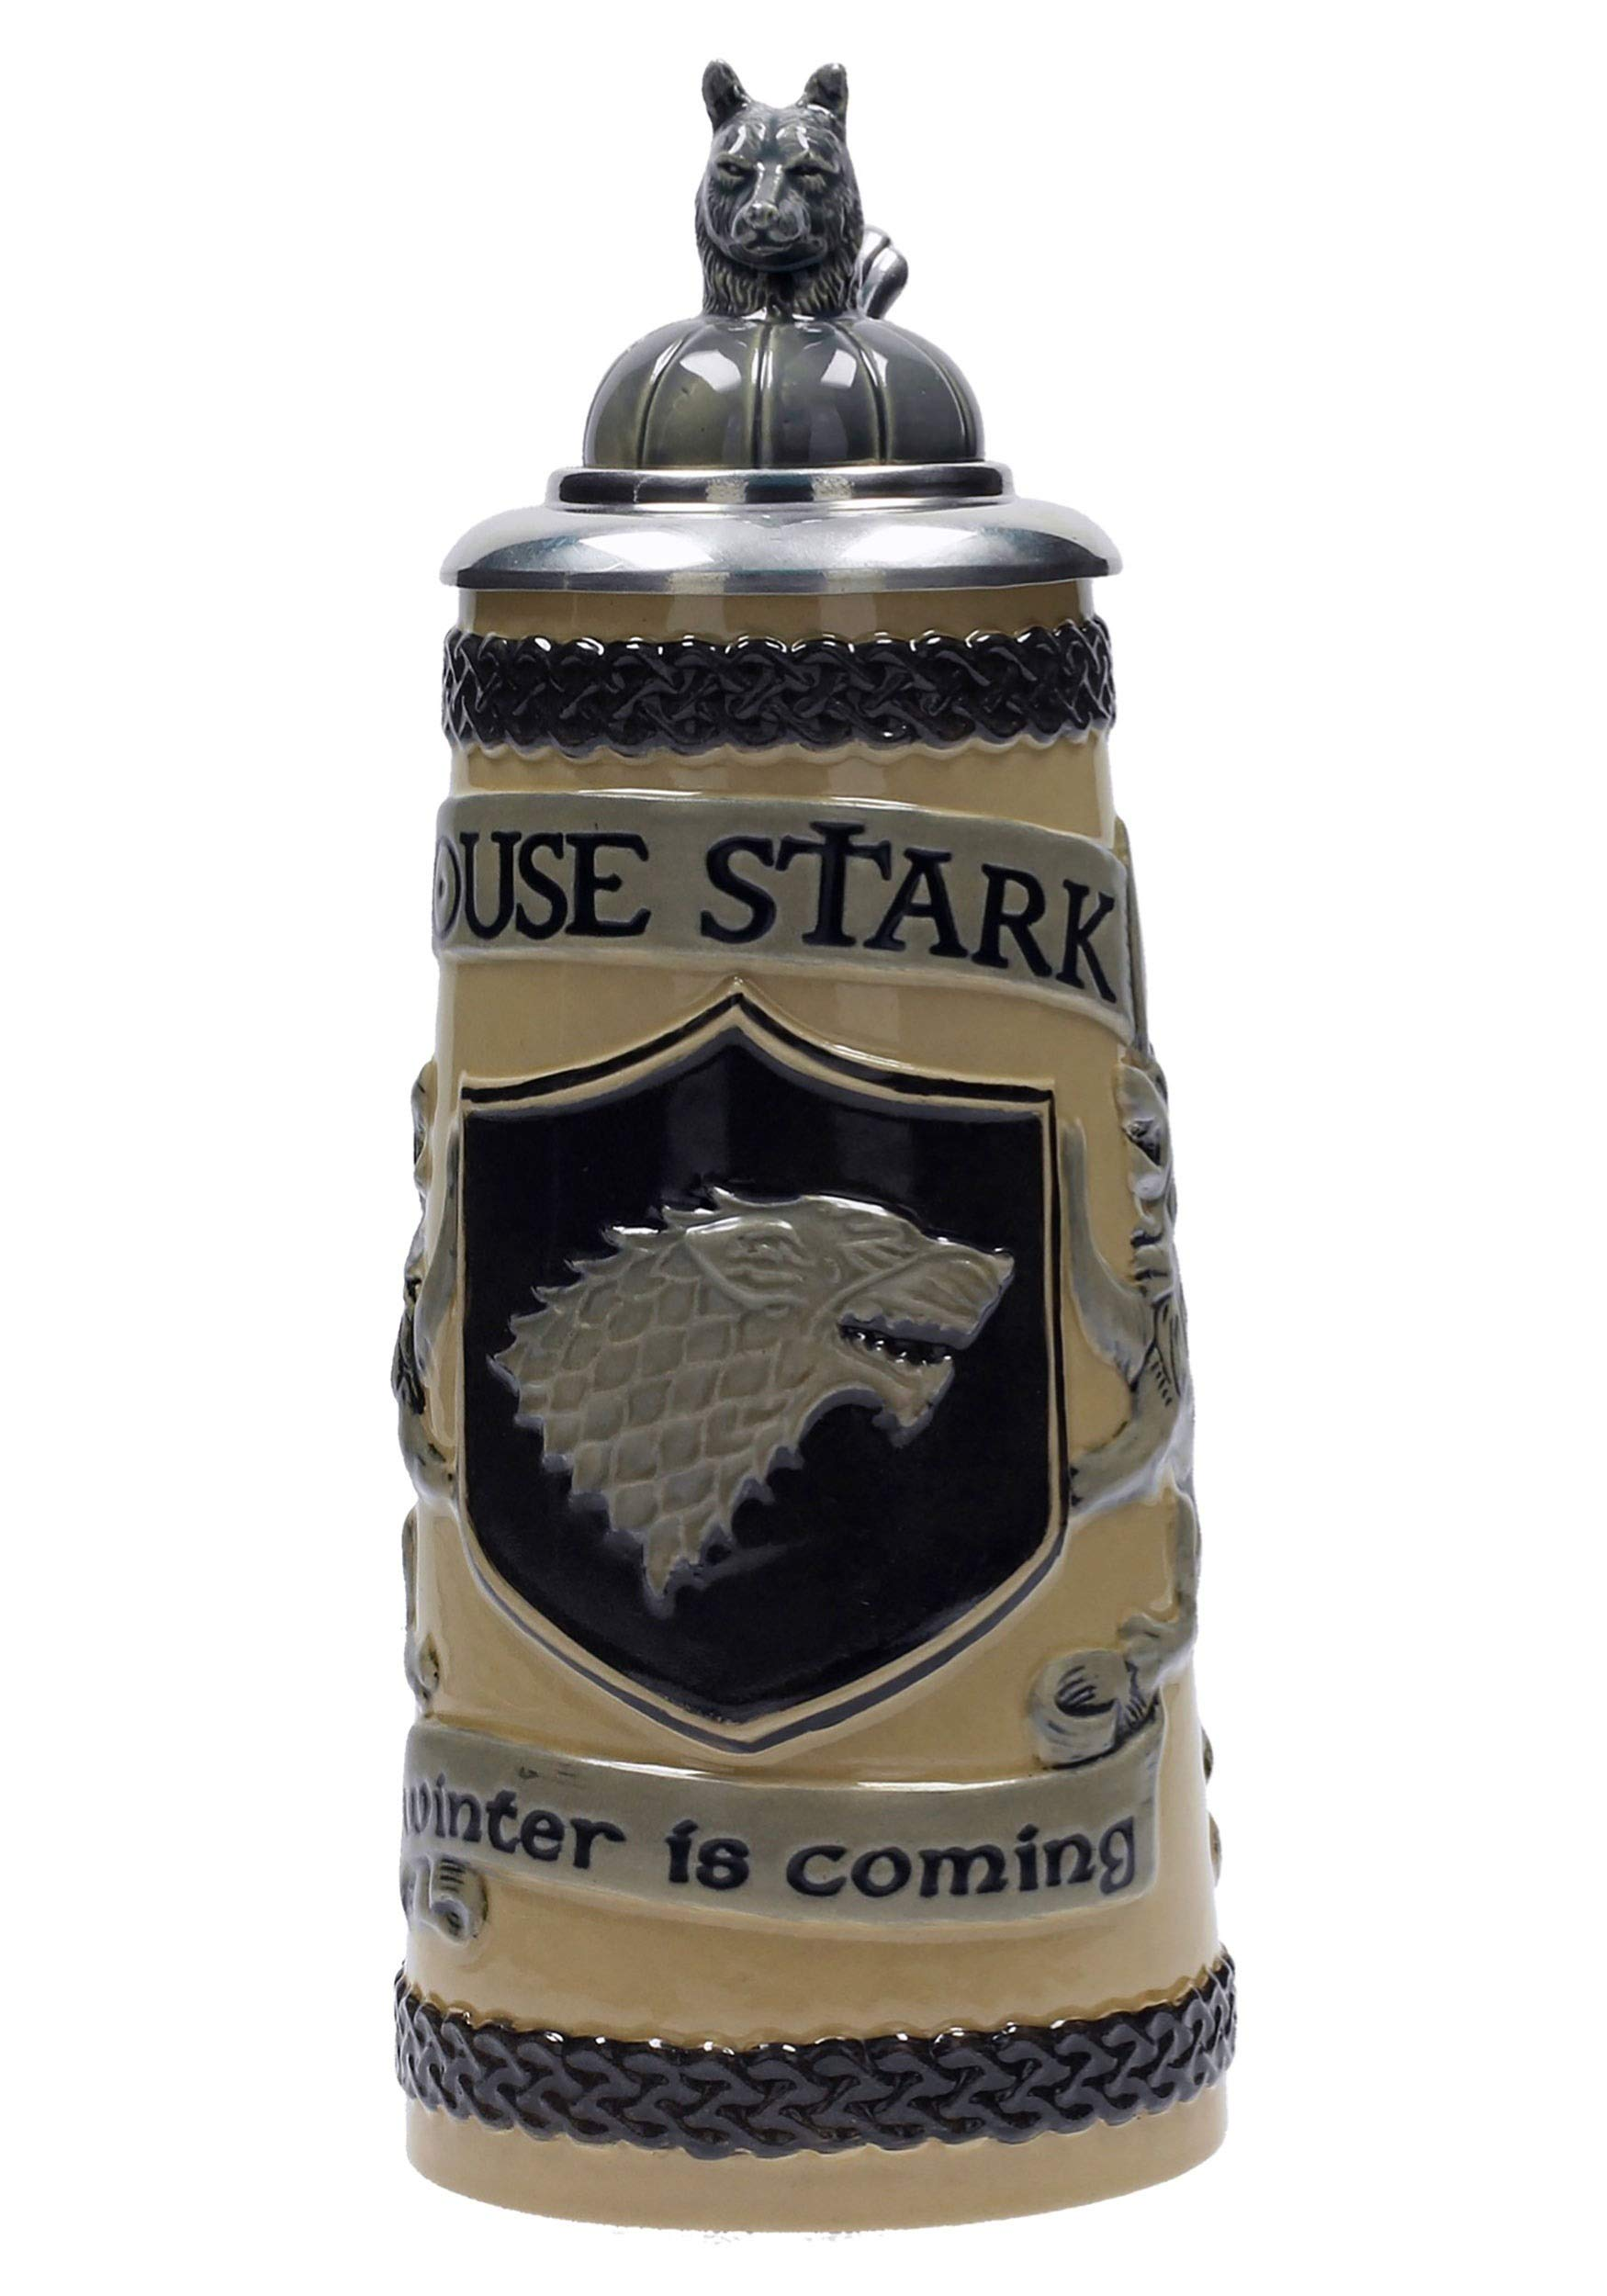 Game of Thrones House Stark Beer Stein | Collectible Authentic Ceramic Drinking Mug | 22 Ounces by SD Toys Merchandising (Image #1)